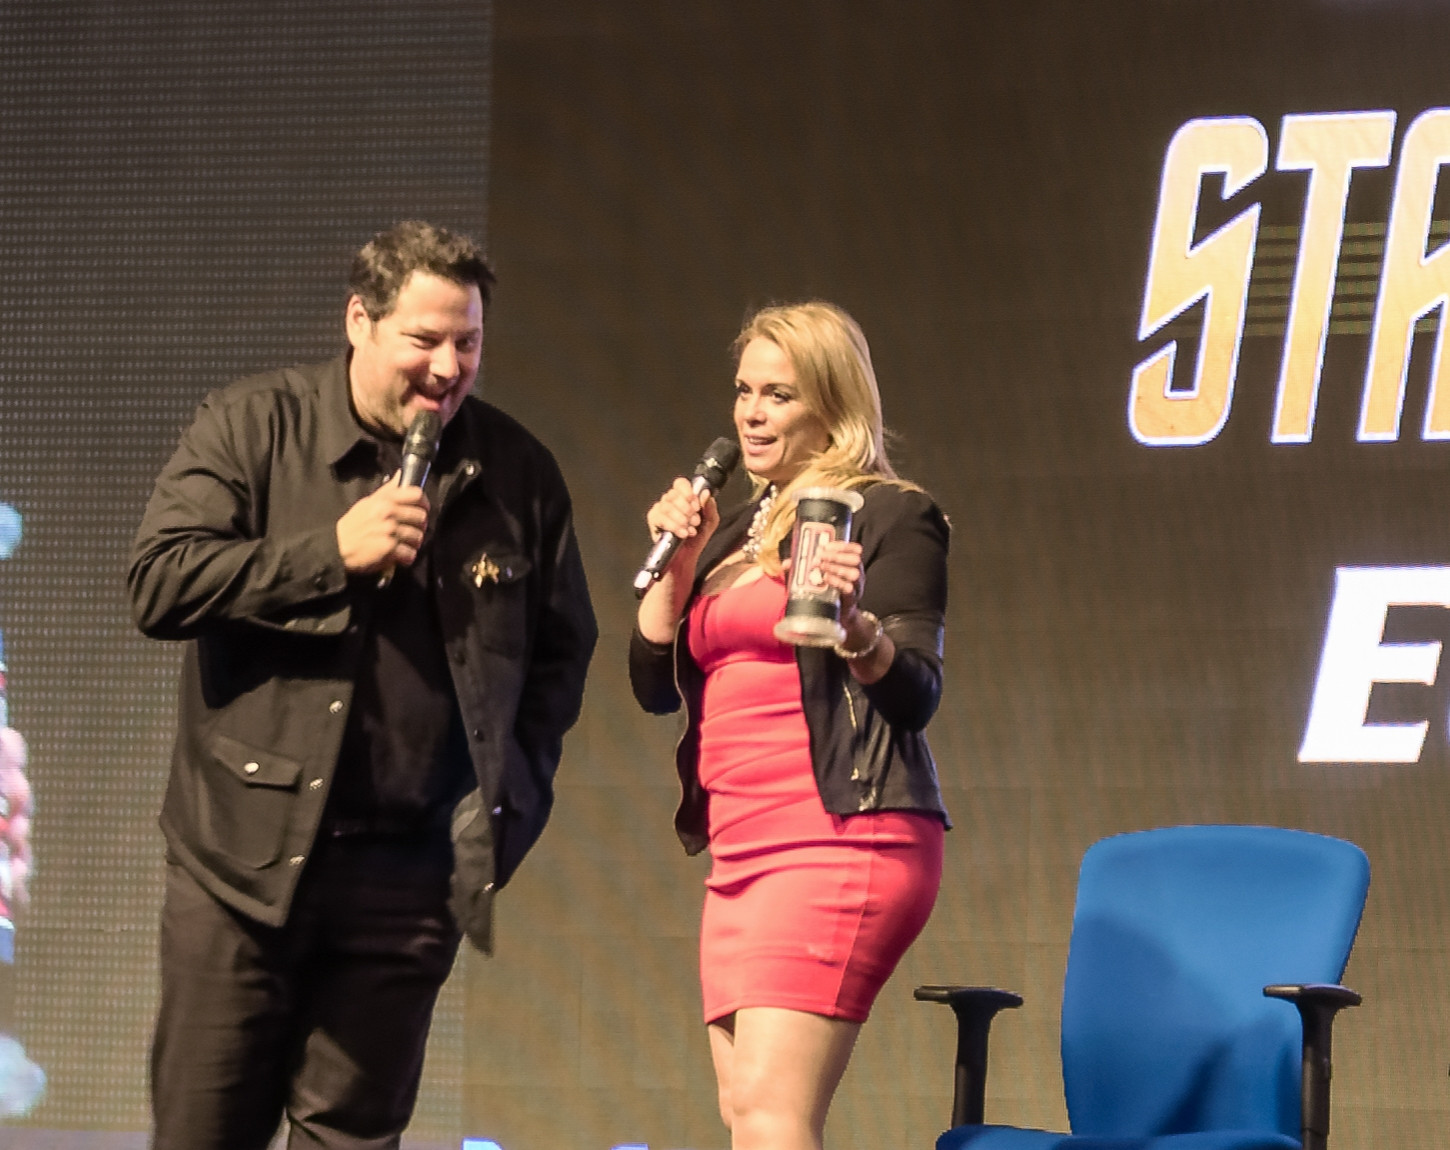 Greg Grunberg and Chase Masterson